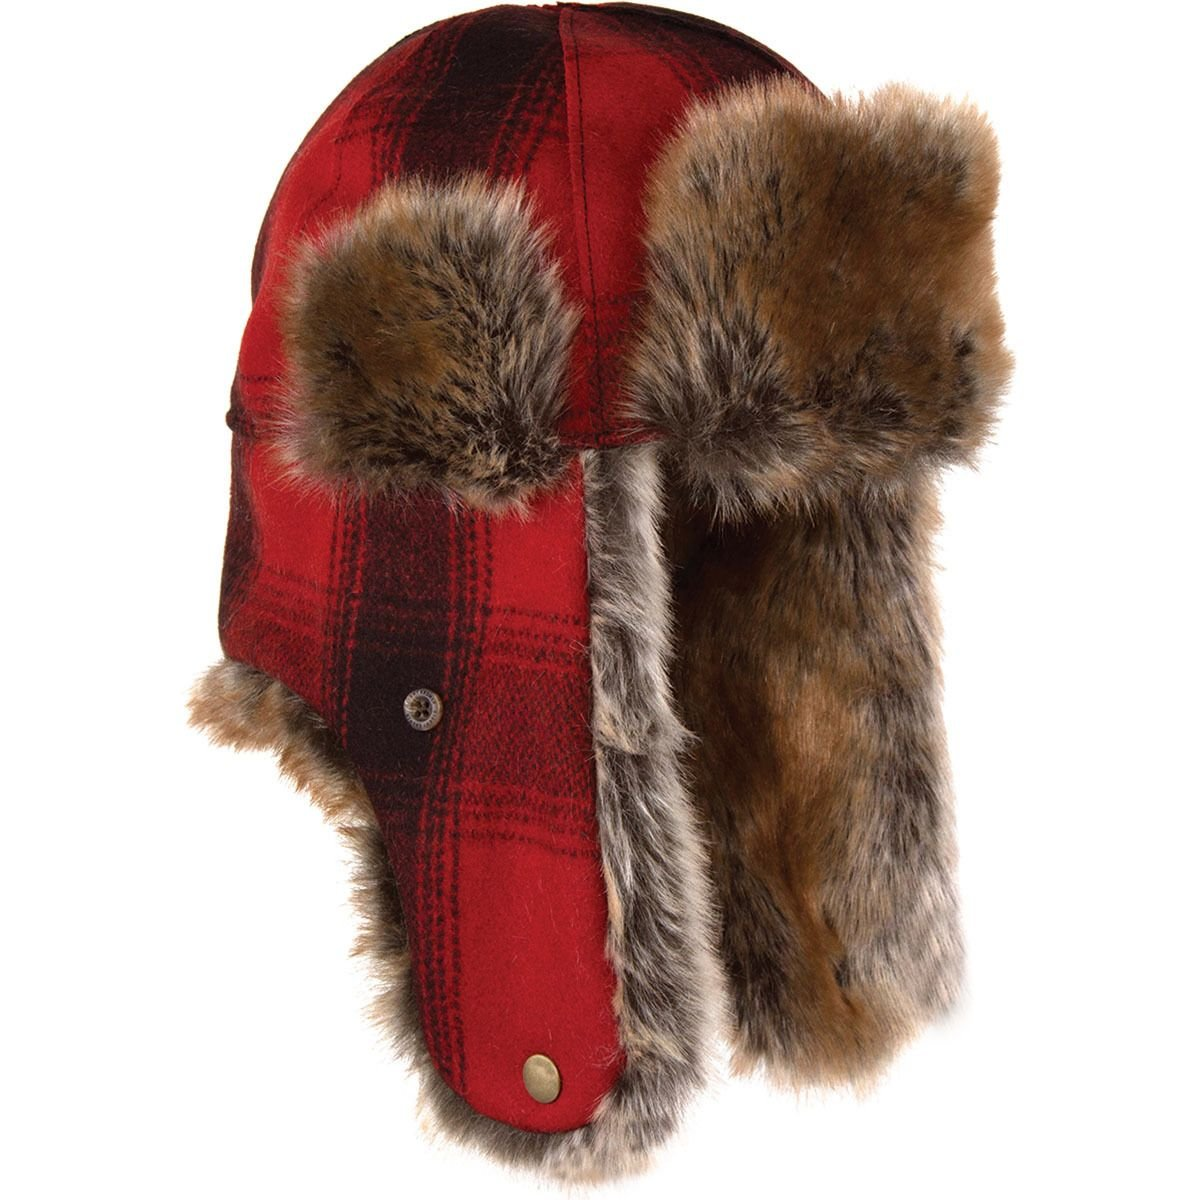 Stormy Kromer The Northwoods Trapper Hat - Red/Black Plaid - SM by Stormy Kromer